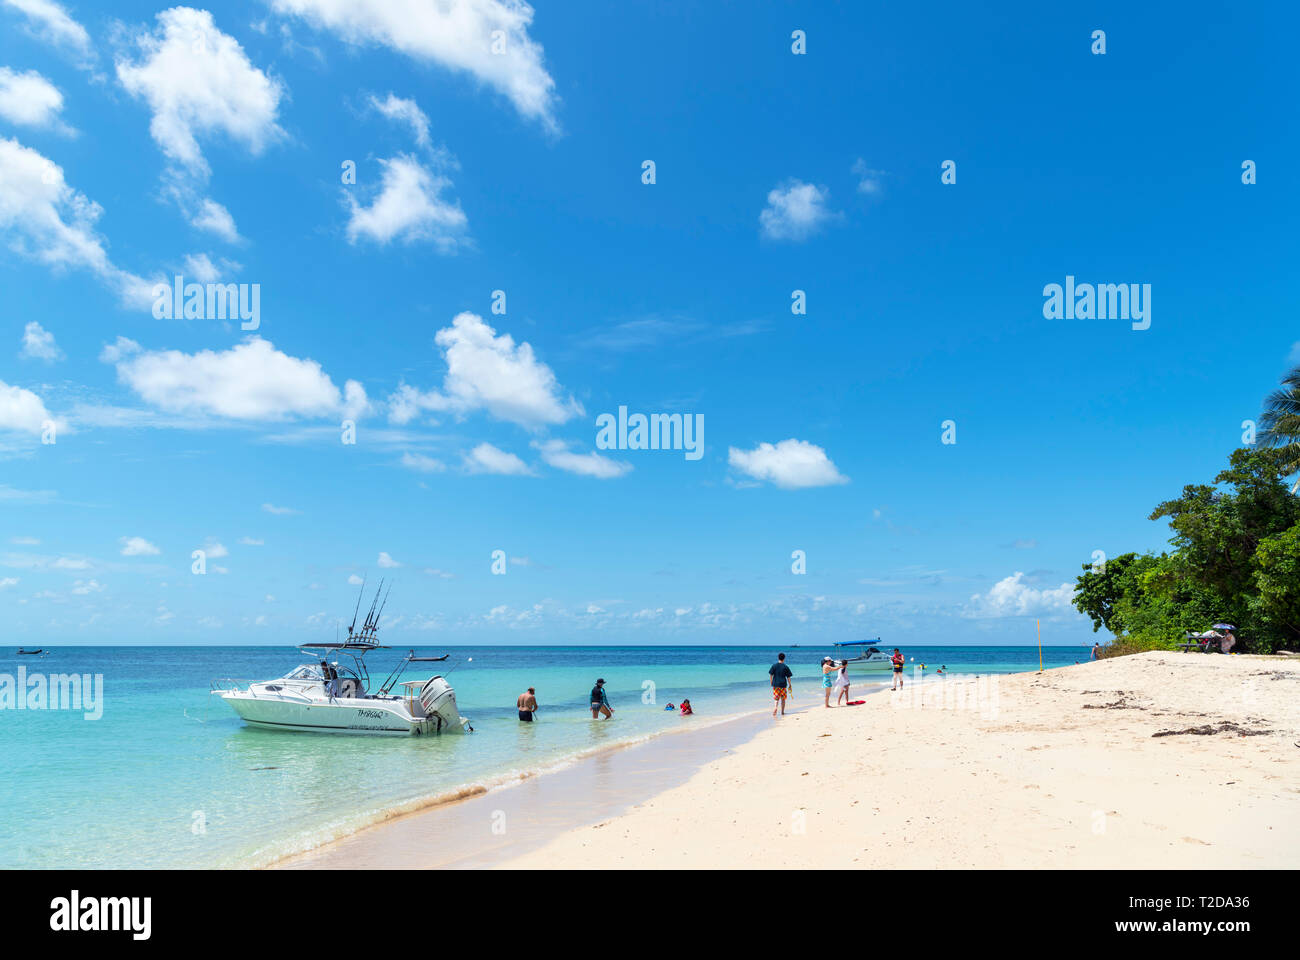 Great Barrier Reef, Australia. Beach on Green Island, a coral cay in the Great Barrier Reef Marine Park, Queensland, Australia Stock Photo